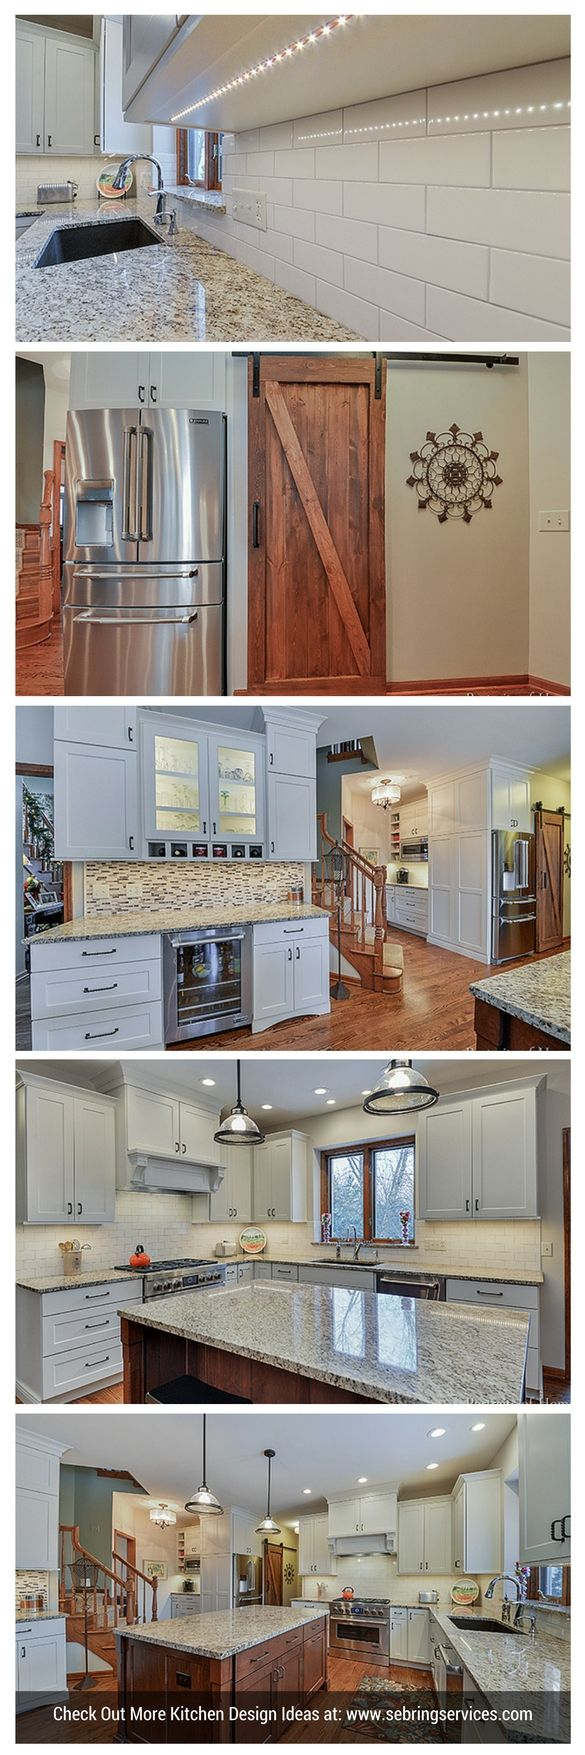 Patrick Sharons Kitchen Remodel Pictures Craftsman Style - Bathroom remodeling wheaton il